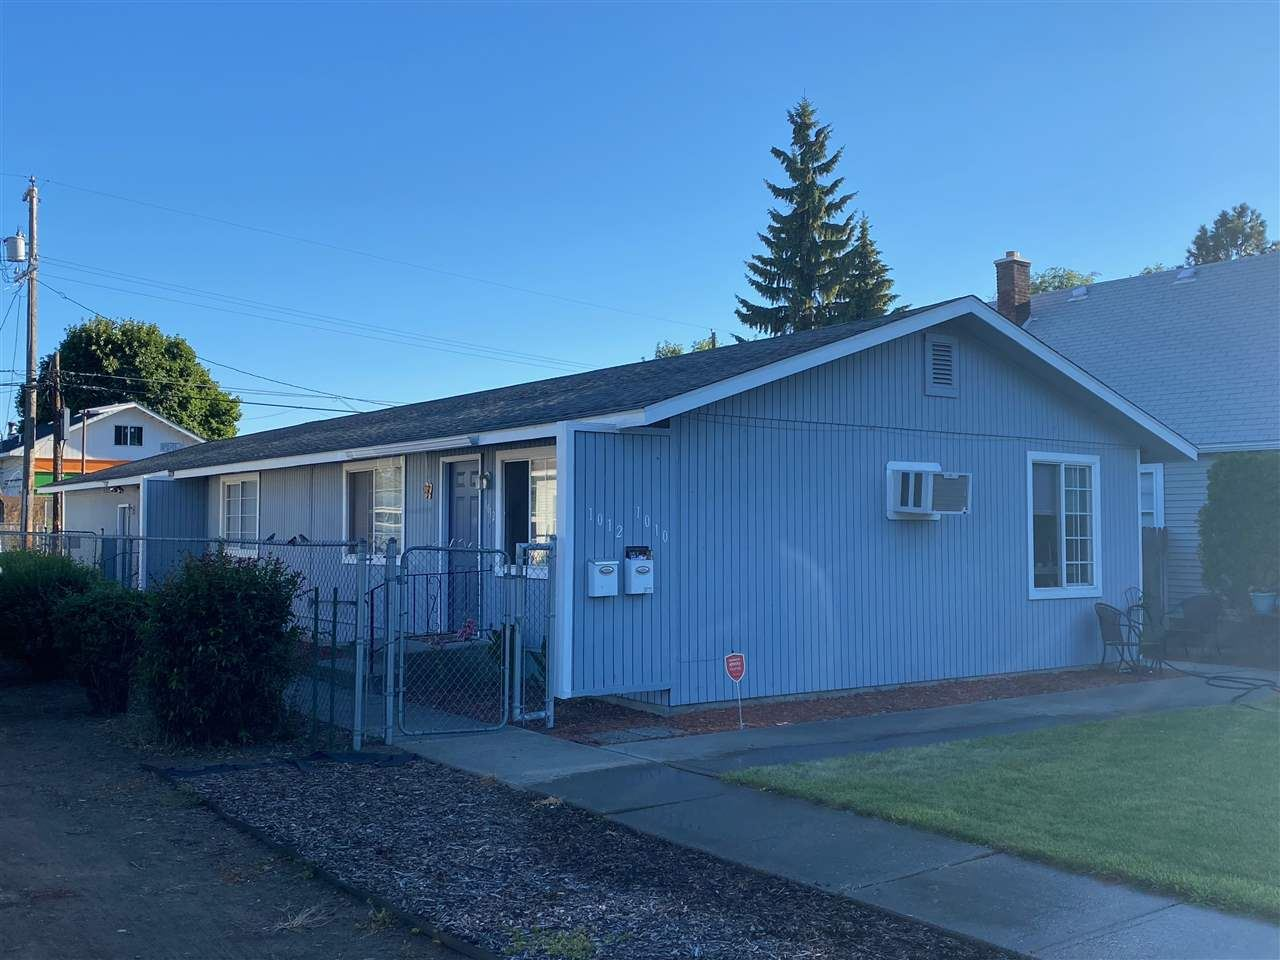 1012 E Everett Ave #1010, Spokane, WA 99207 - #: 202019440